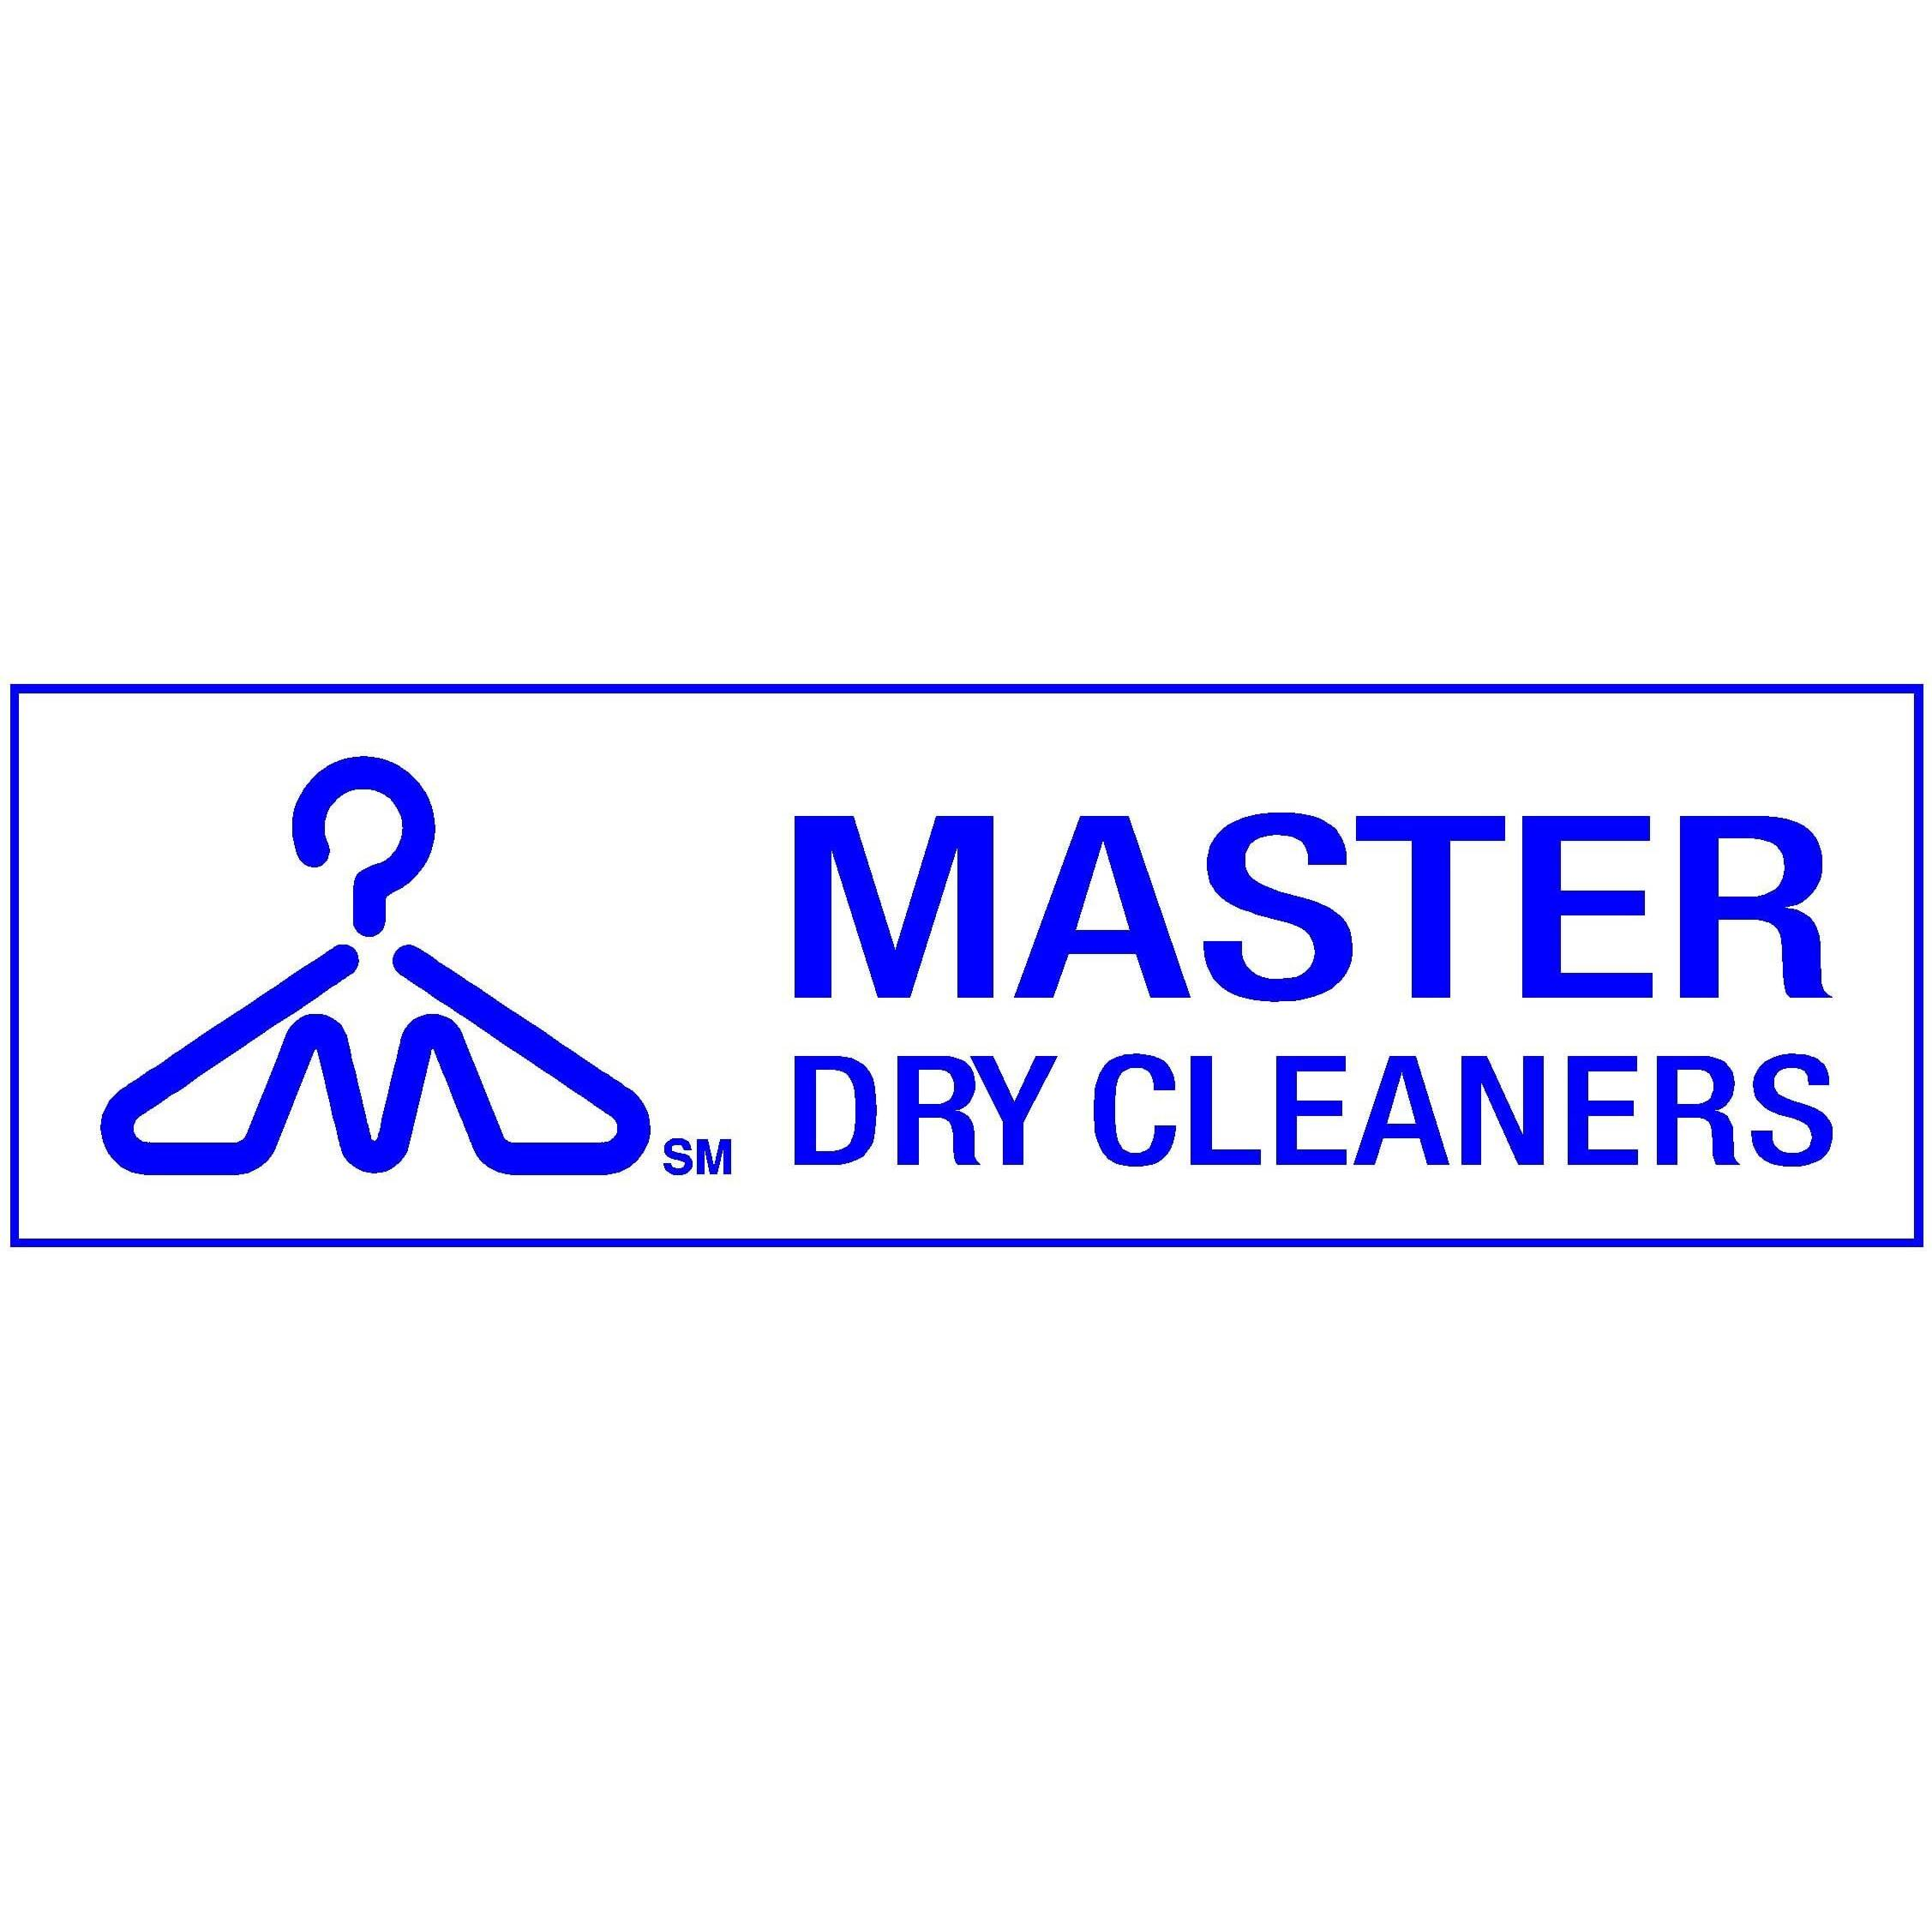 Master Dry Cleaners - Traverse City, MI 49686 - (231)946-5620 | ShowMeLocal.com